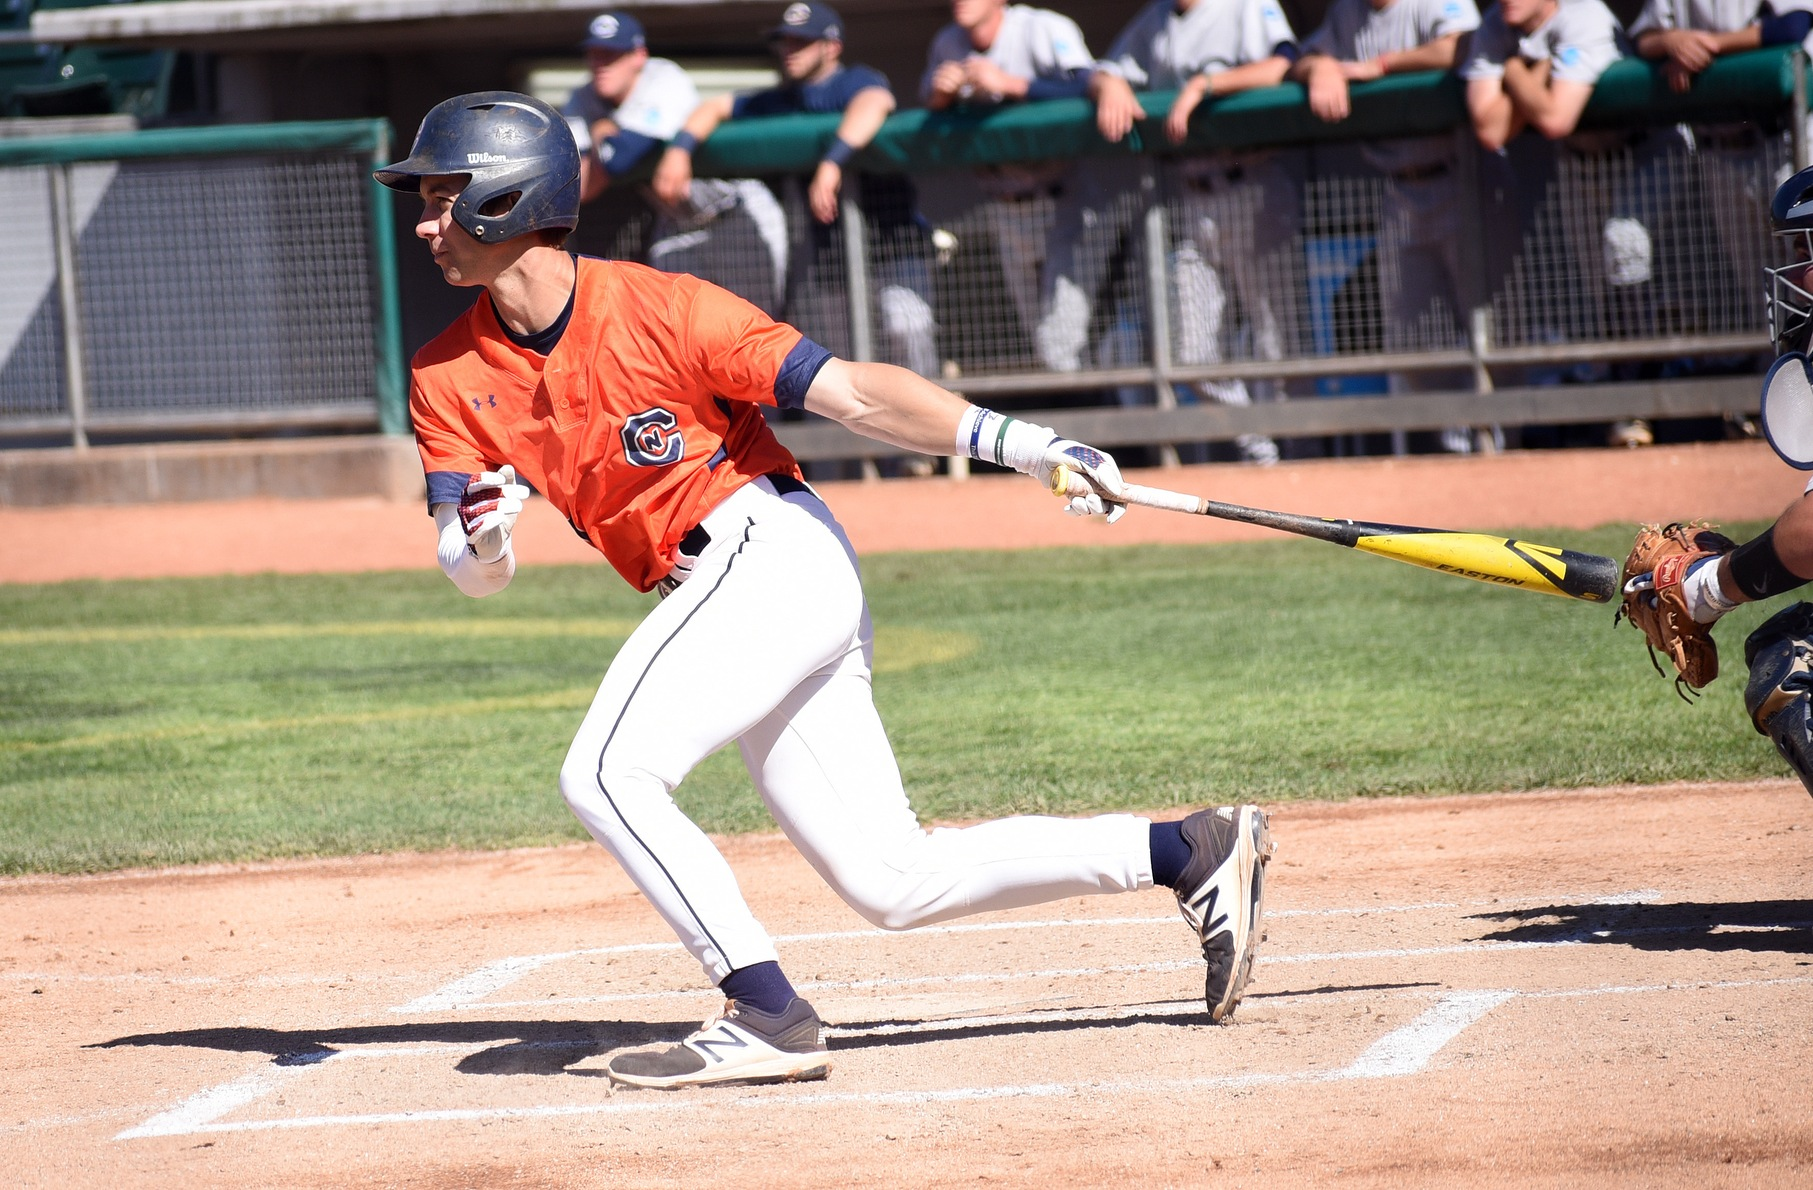 Orange's lineup excels in 9-6 win over Blue in game one